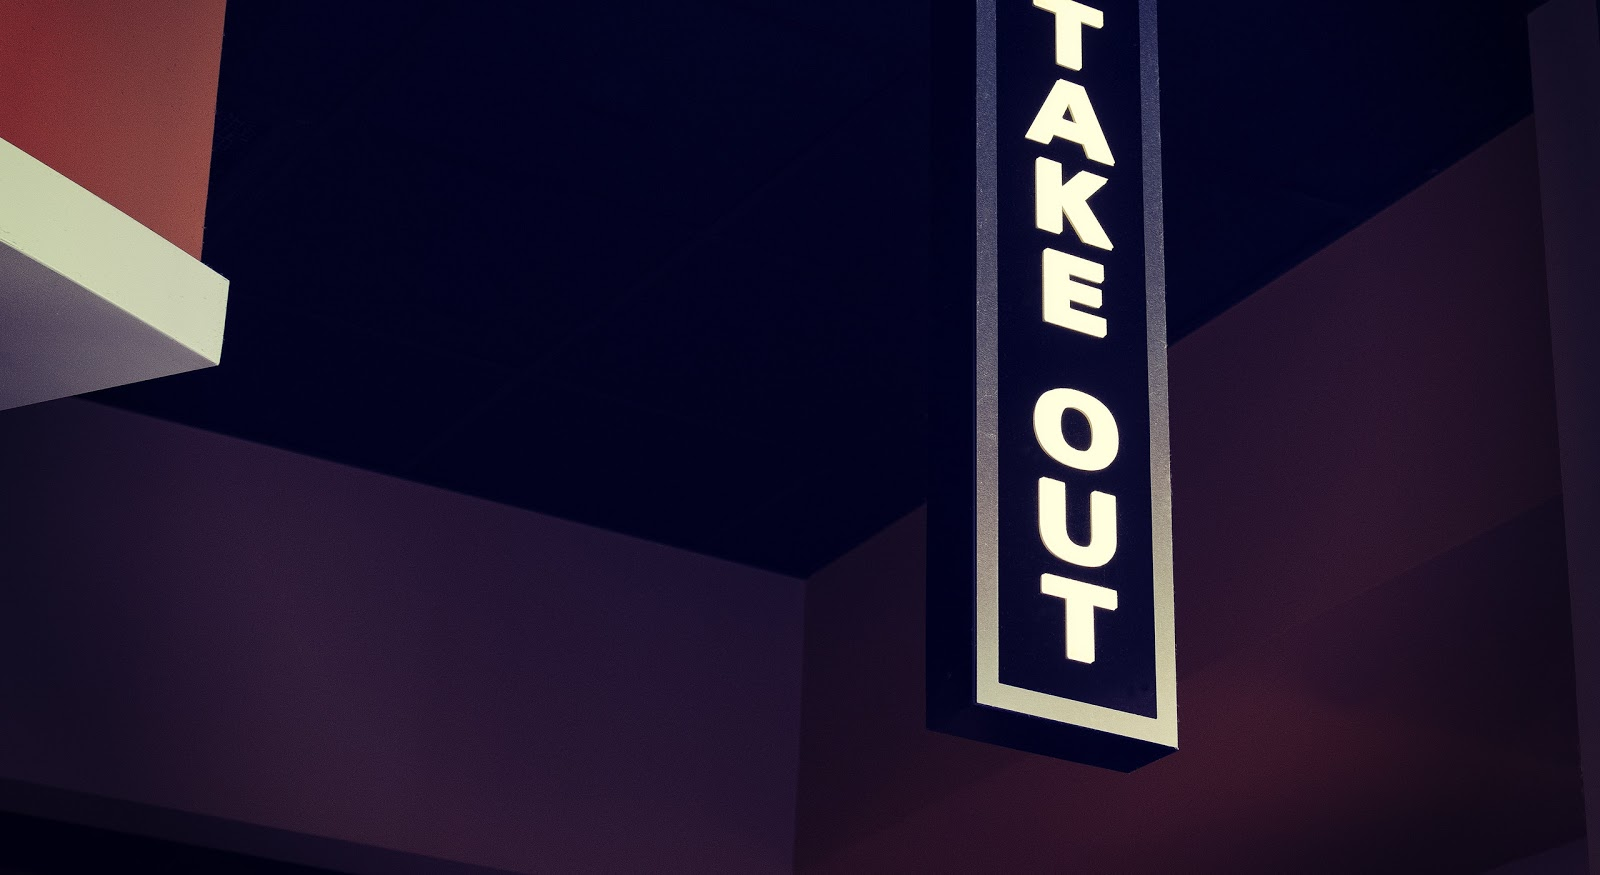 Best Take Out Restaurants & Delivery in Orange County